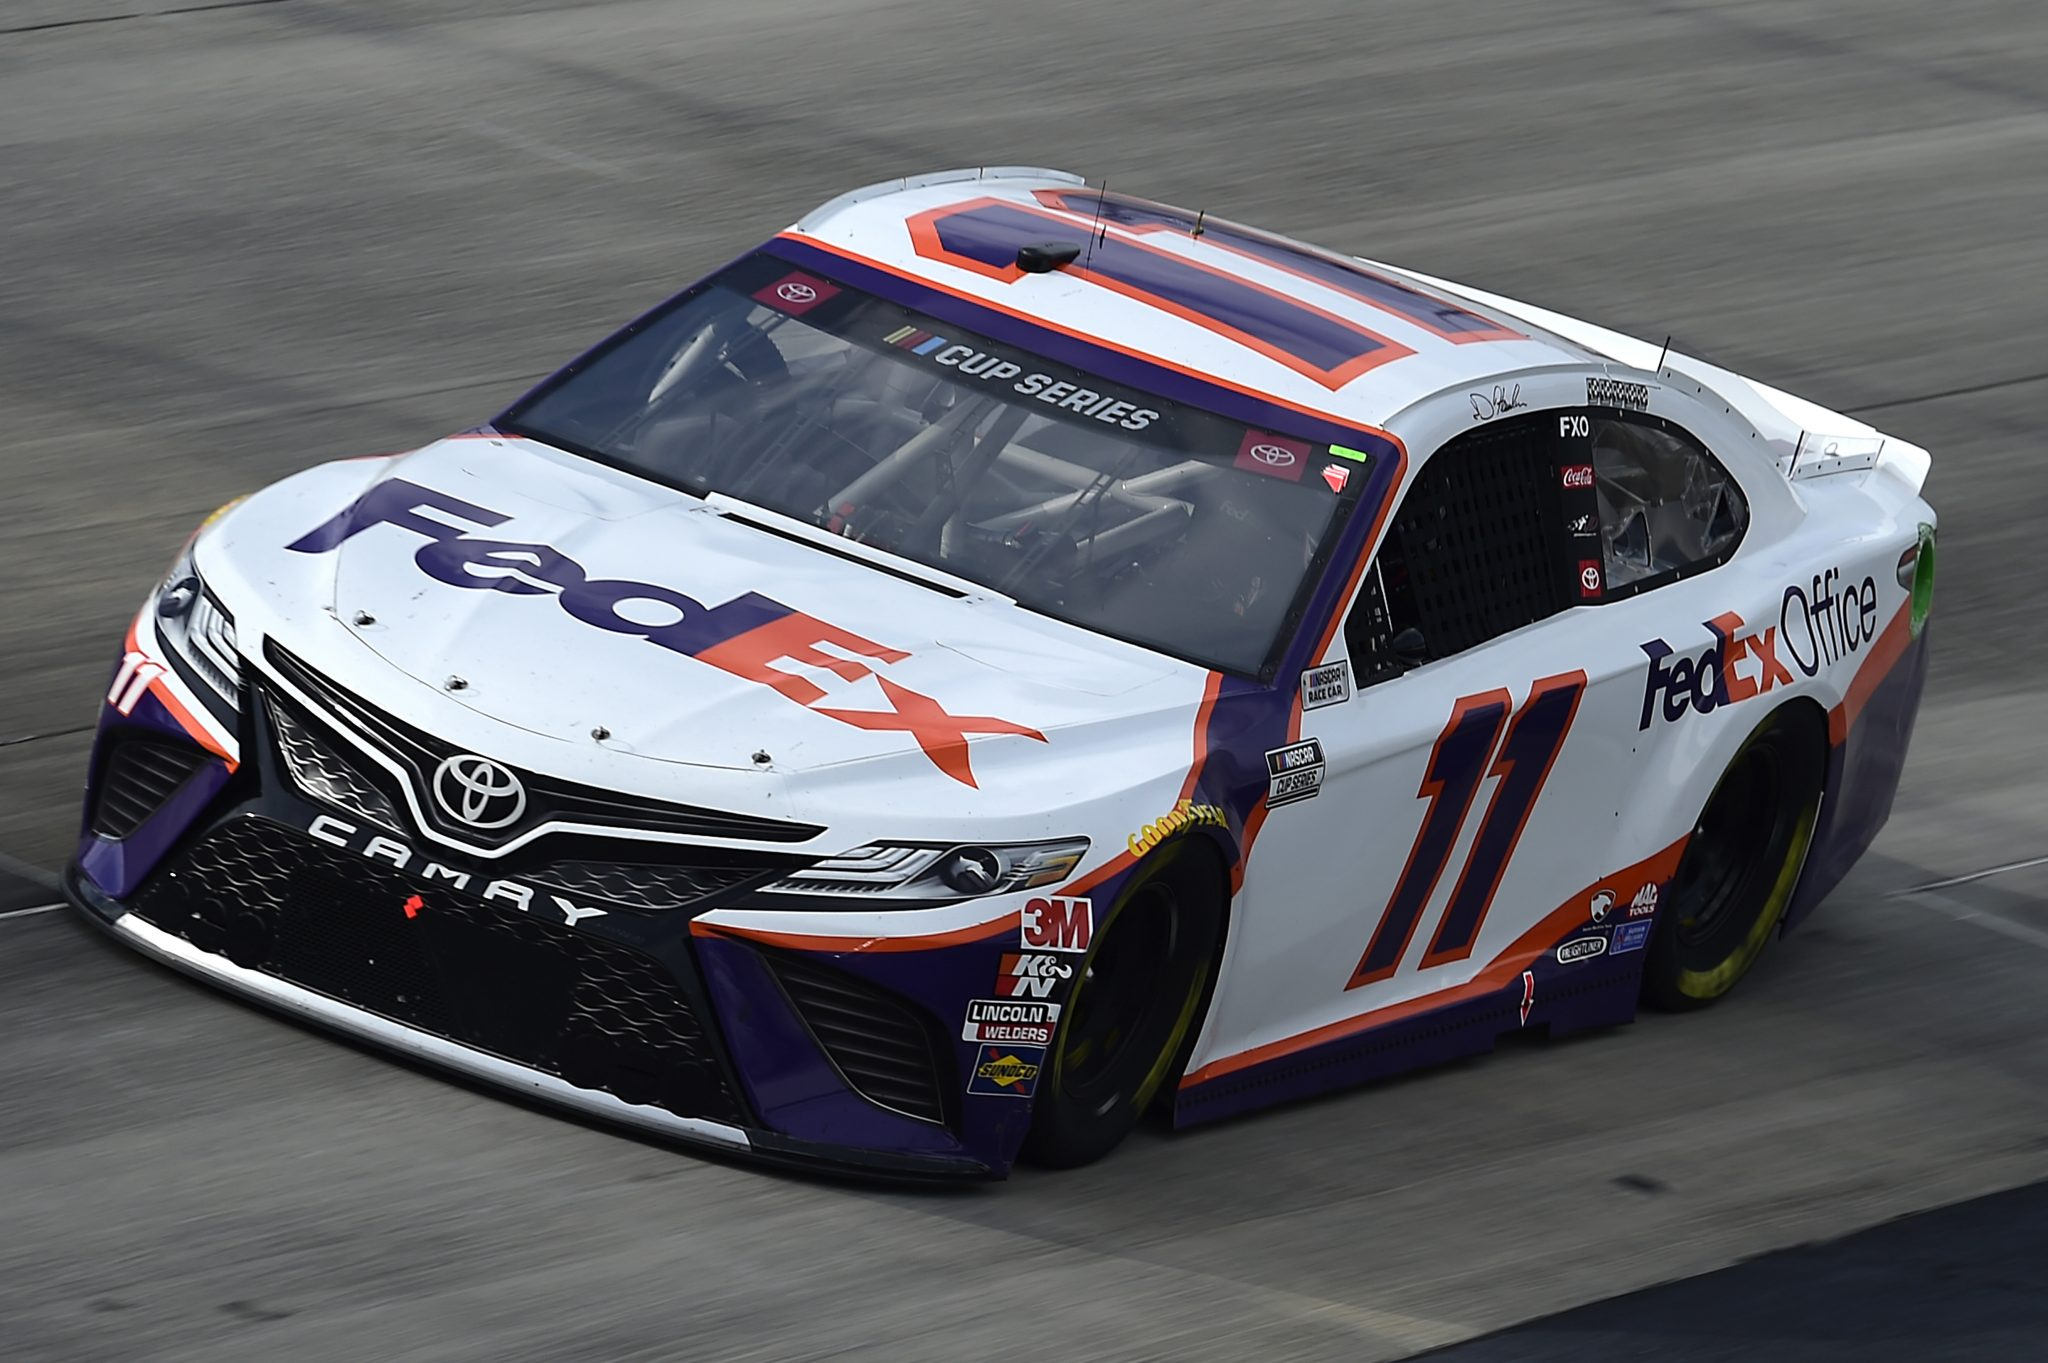 DOVER, DELAWARE - AUGUST 22: Denny Hamlin, driver of the #11 FedEx Office Toyota, drives during the NASCAR Cup Series Drydene 311 at Dover International Speedway on August 22, 2020 in Dover, Delaware. (Photo by Jared C. Tilton/Getty Images) | Getty Images